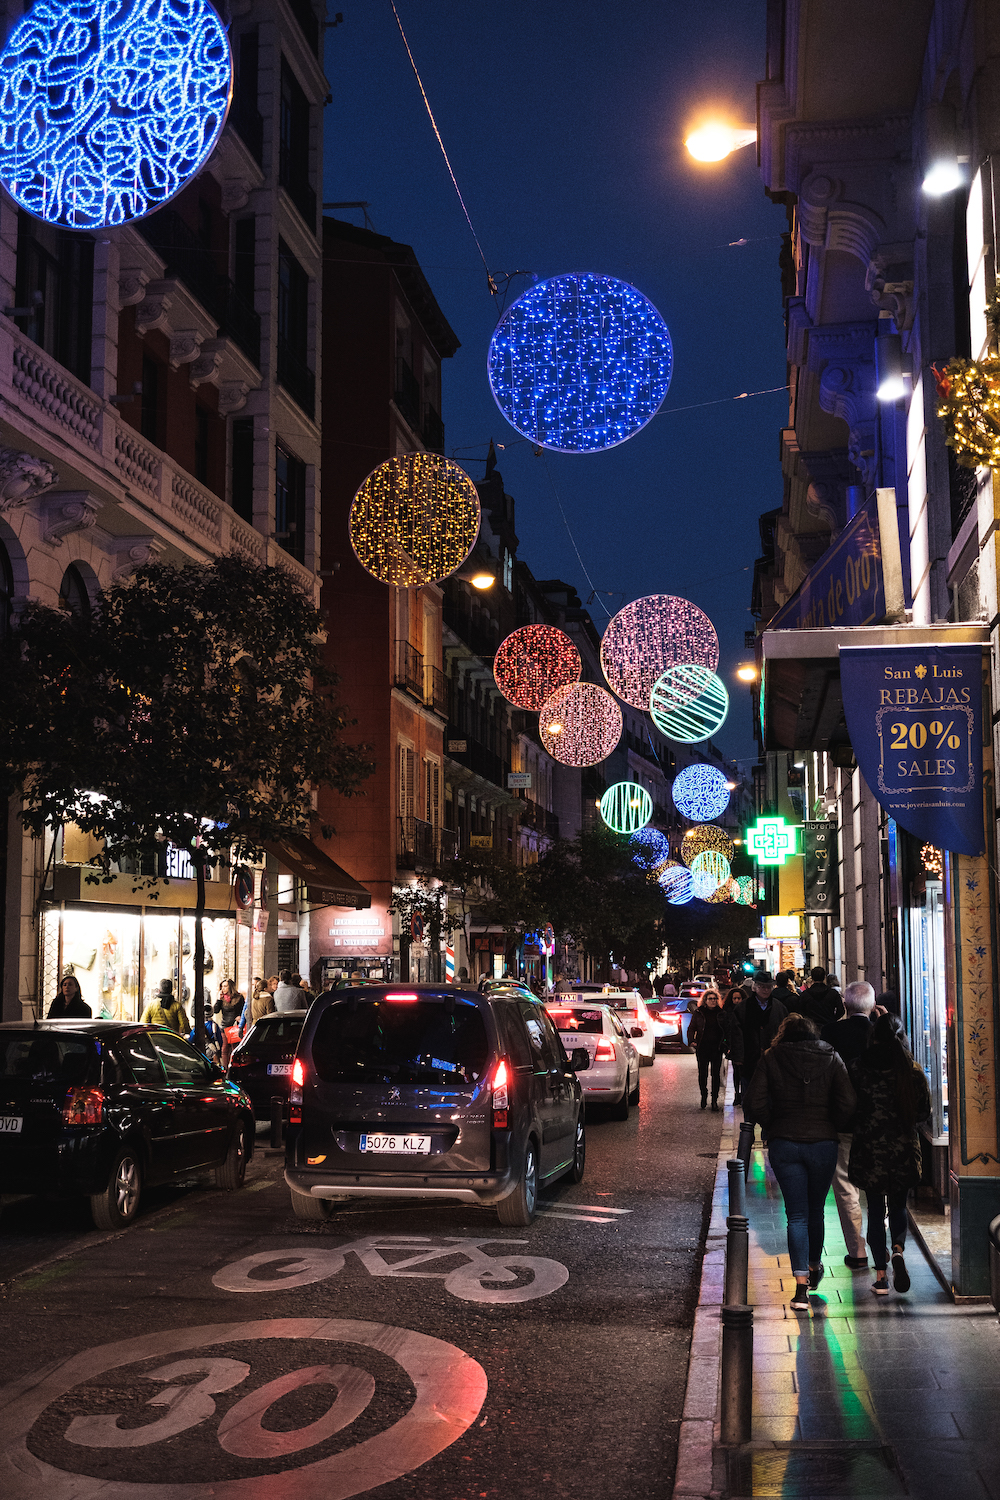 Madrid's Chueca neighbourhood - Popular shopping zone